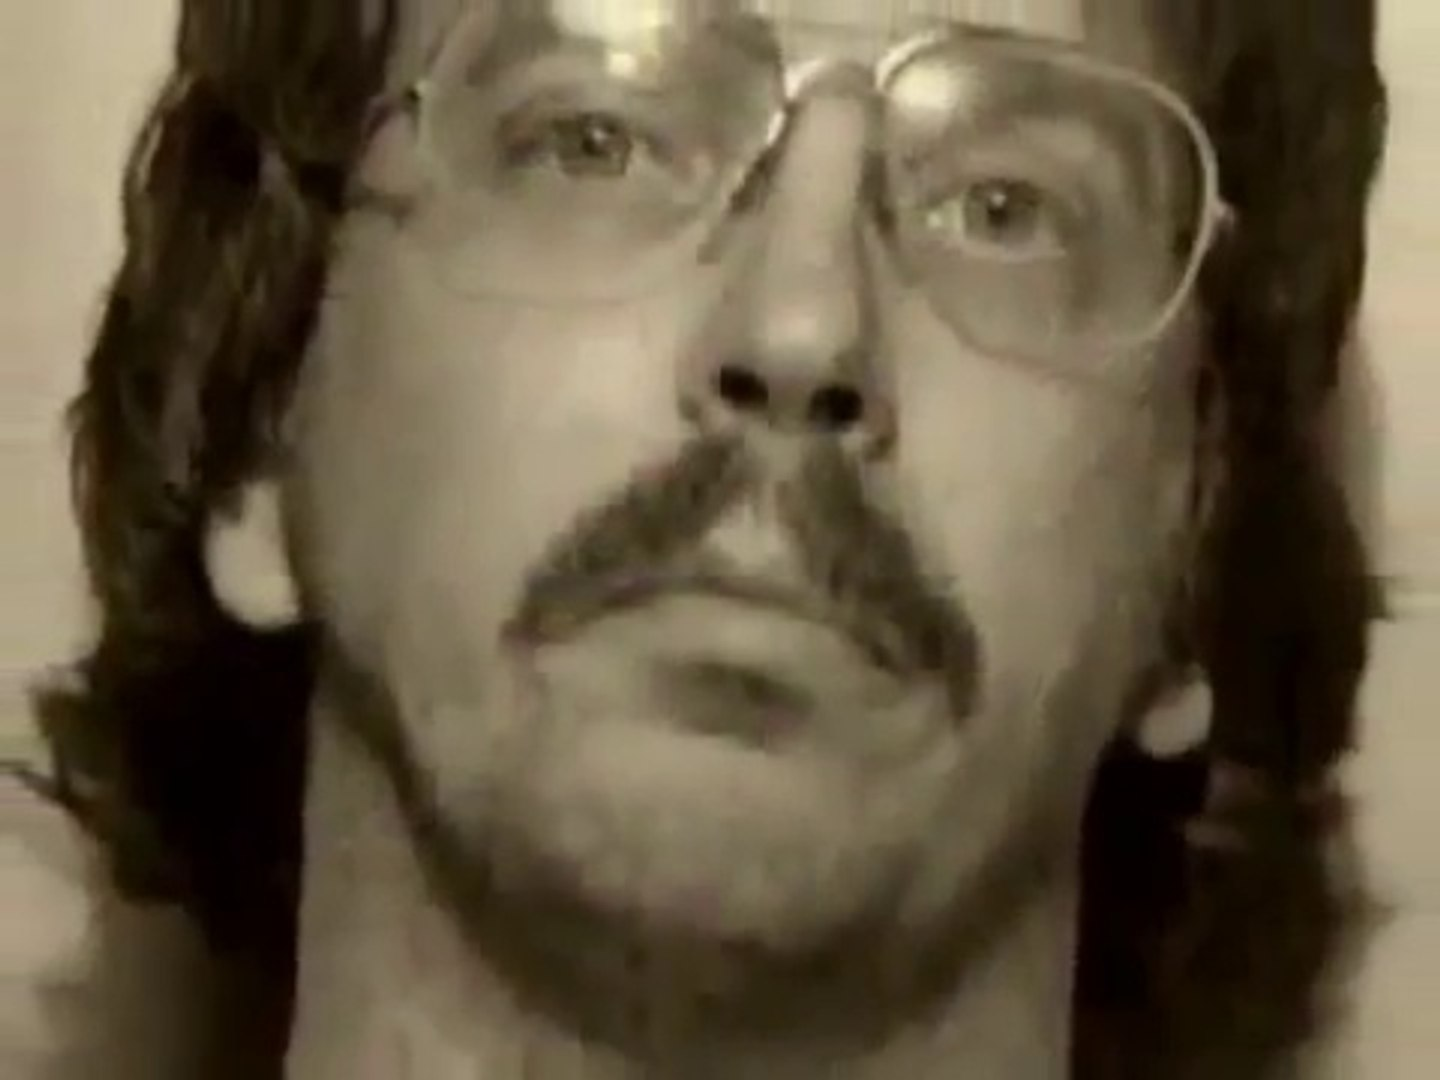 JOEL RIFKIN - SERIAL KILLER DOCUMENTARY - Serial Killers Biography History Documentaries (full docum